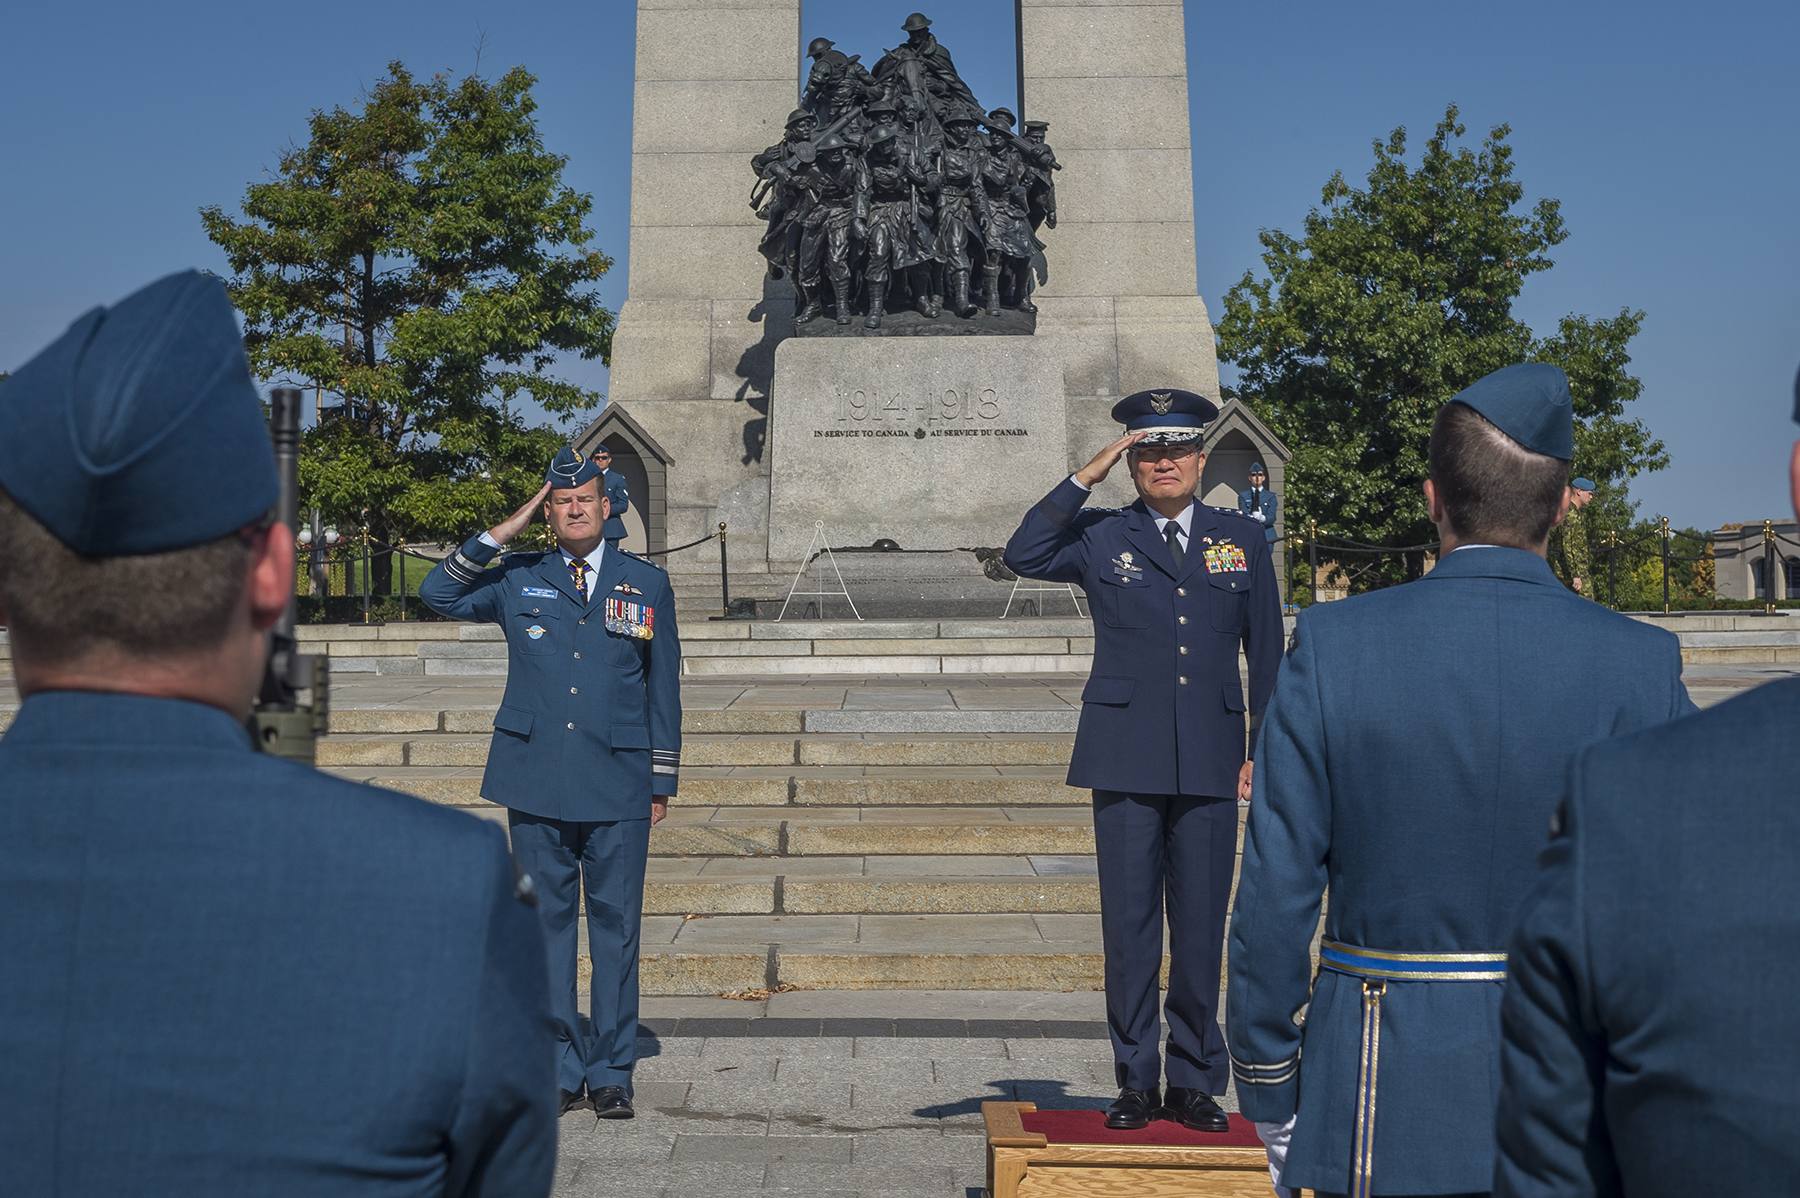 Lieutenant-General Michael Hood (left background), Commander Royal Canadian Air Force, and General Yoshiyuki Sugiyama, Chief of Staff, Japan Air Self-Defense Force, salute during a September 22, 2017, wreath-laying ceremony held at Canada's National War Memorial in Ottawa, Ontario. PHOTO: Corporal Alana Morin, FA03-2017-0122-001